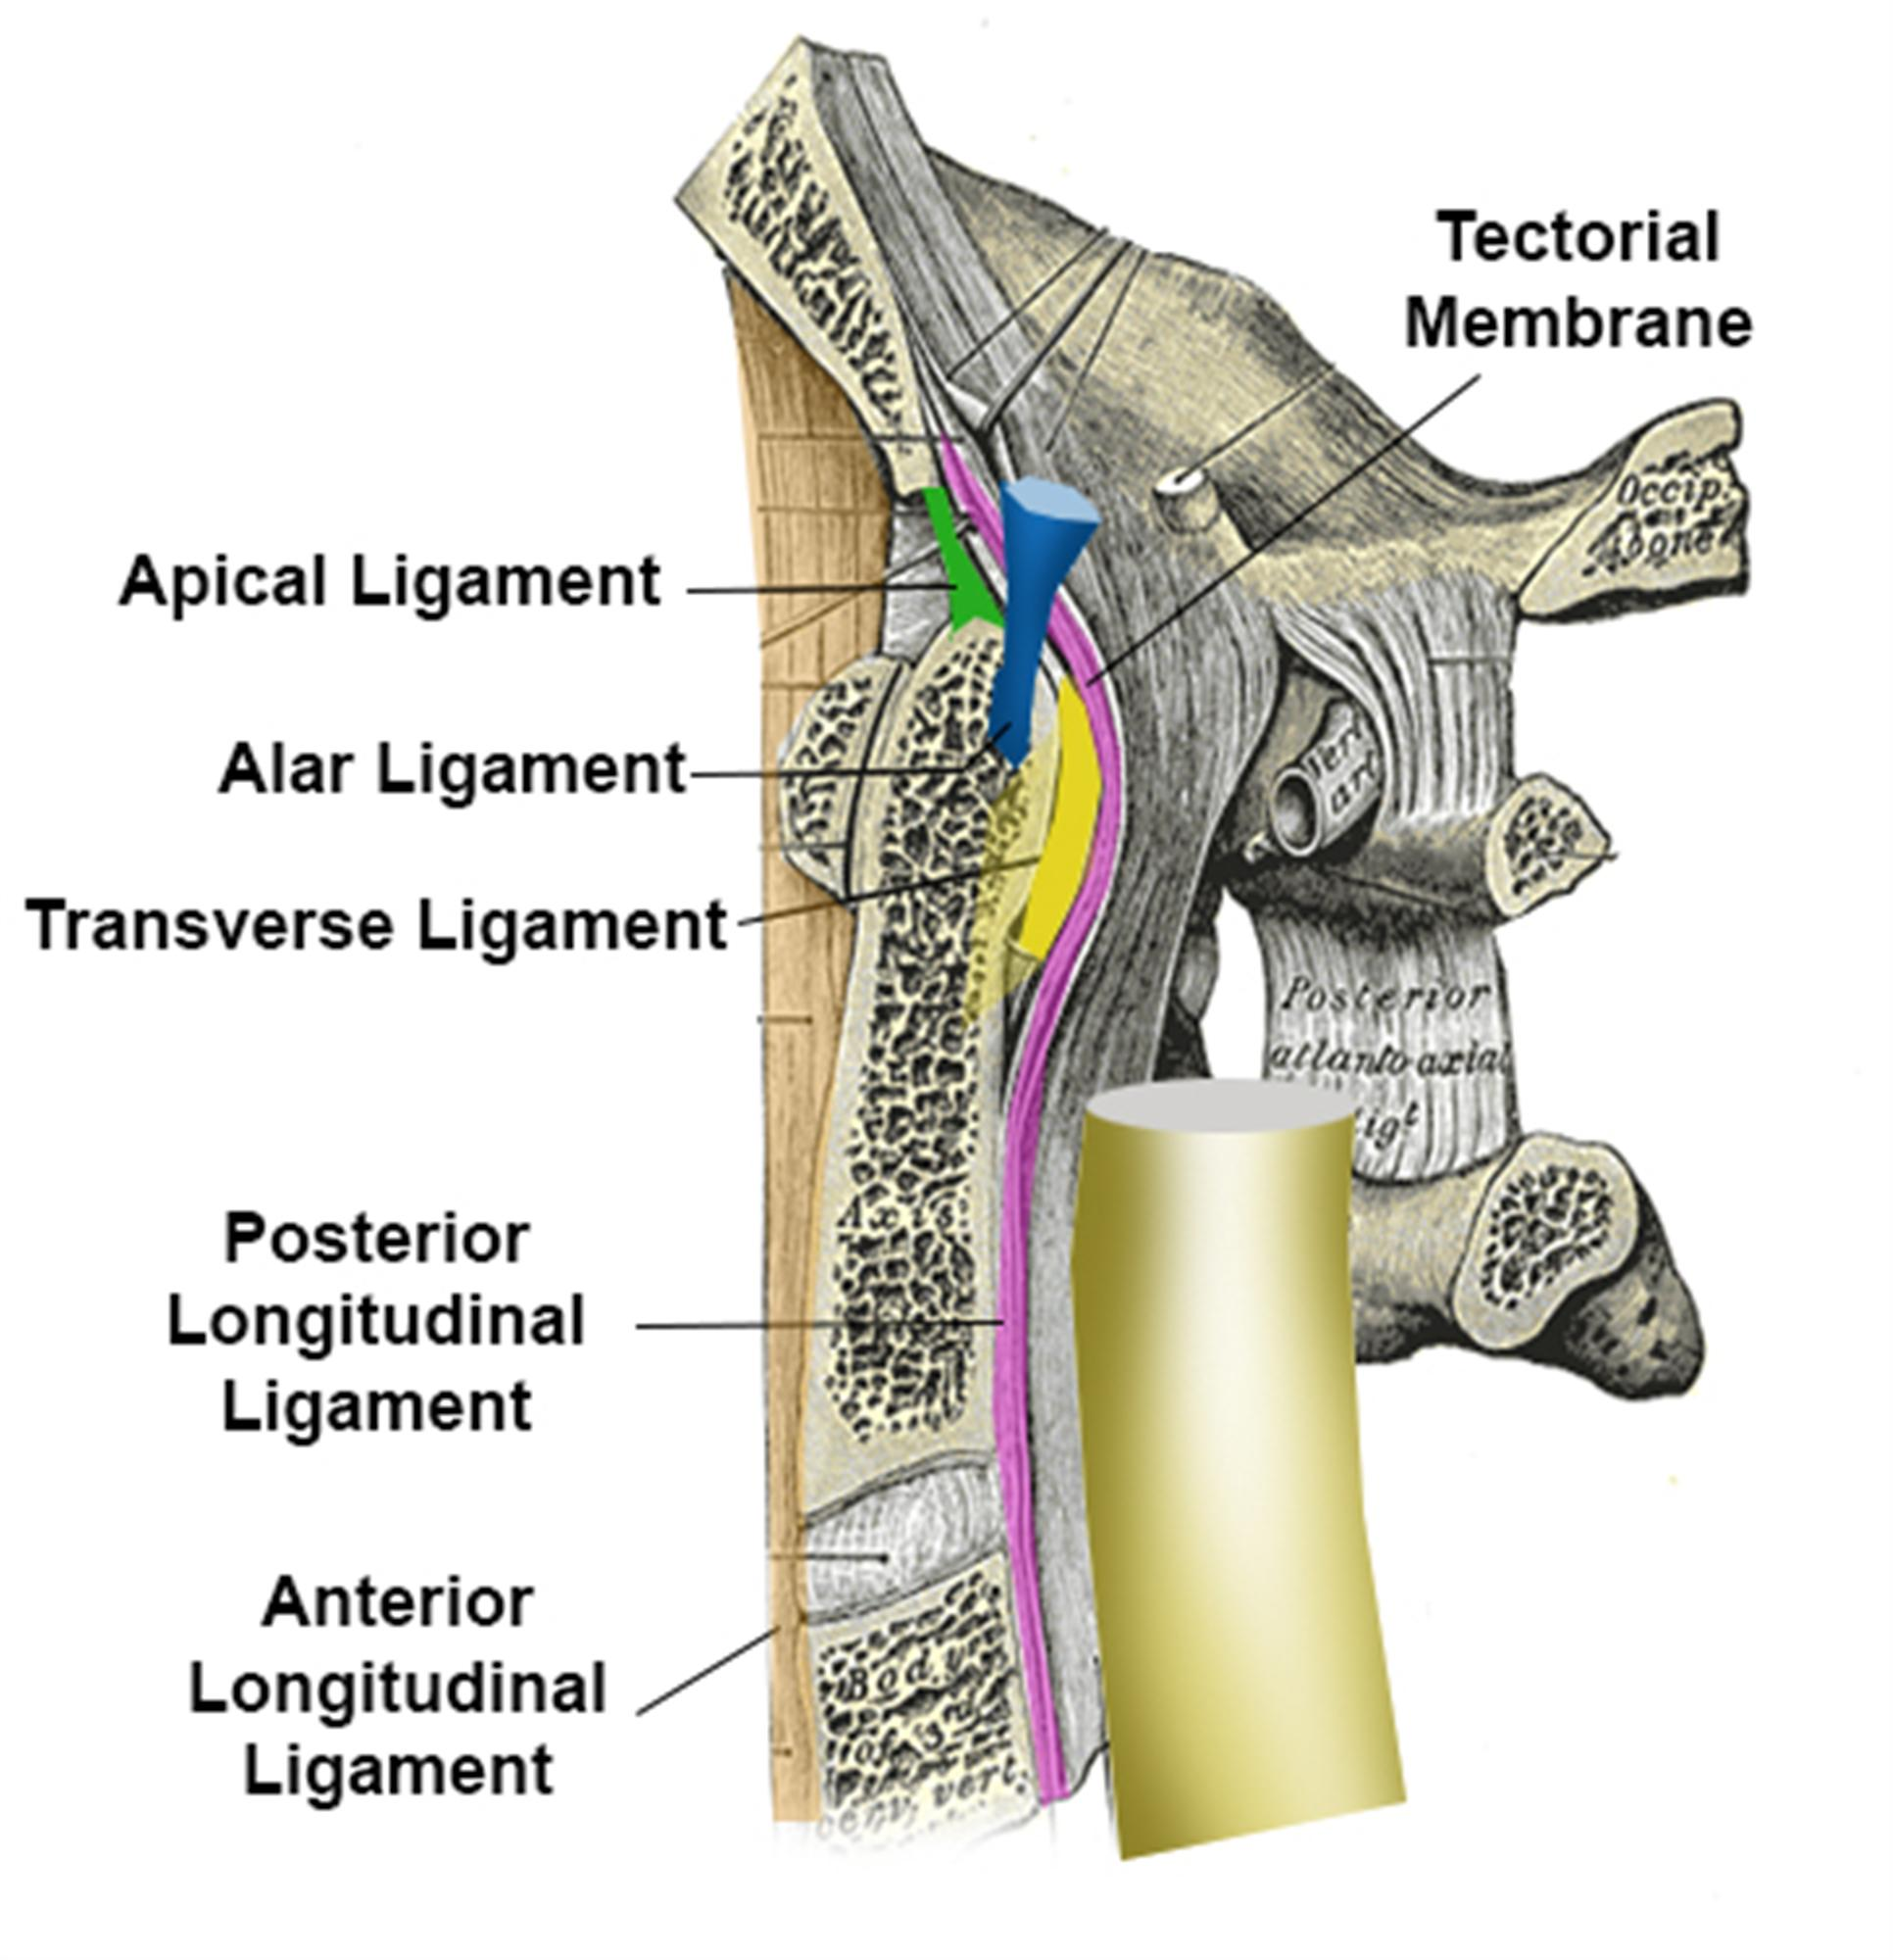 Anterior Longitudinal Ligament